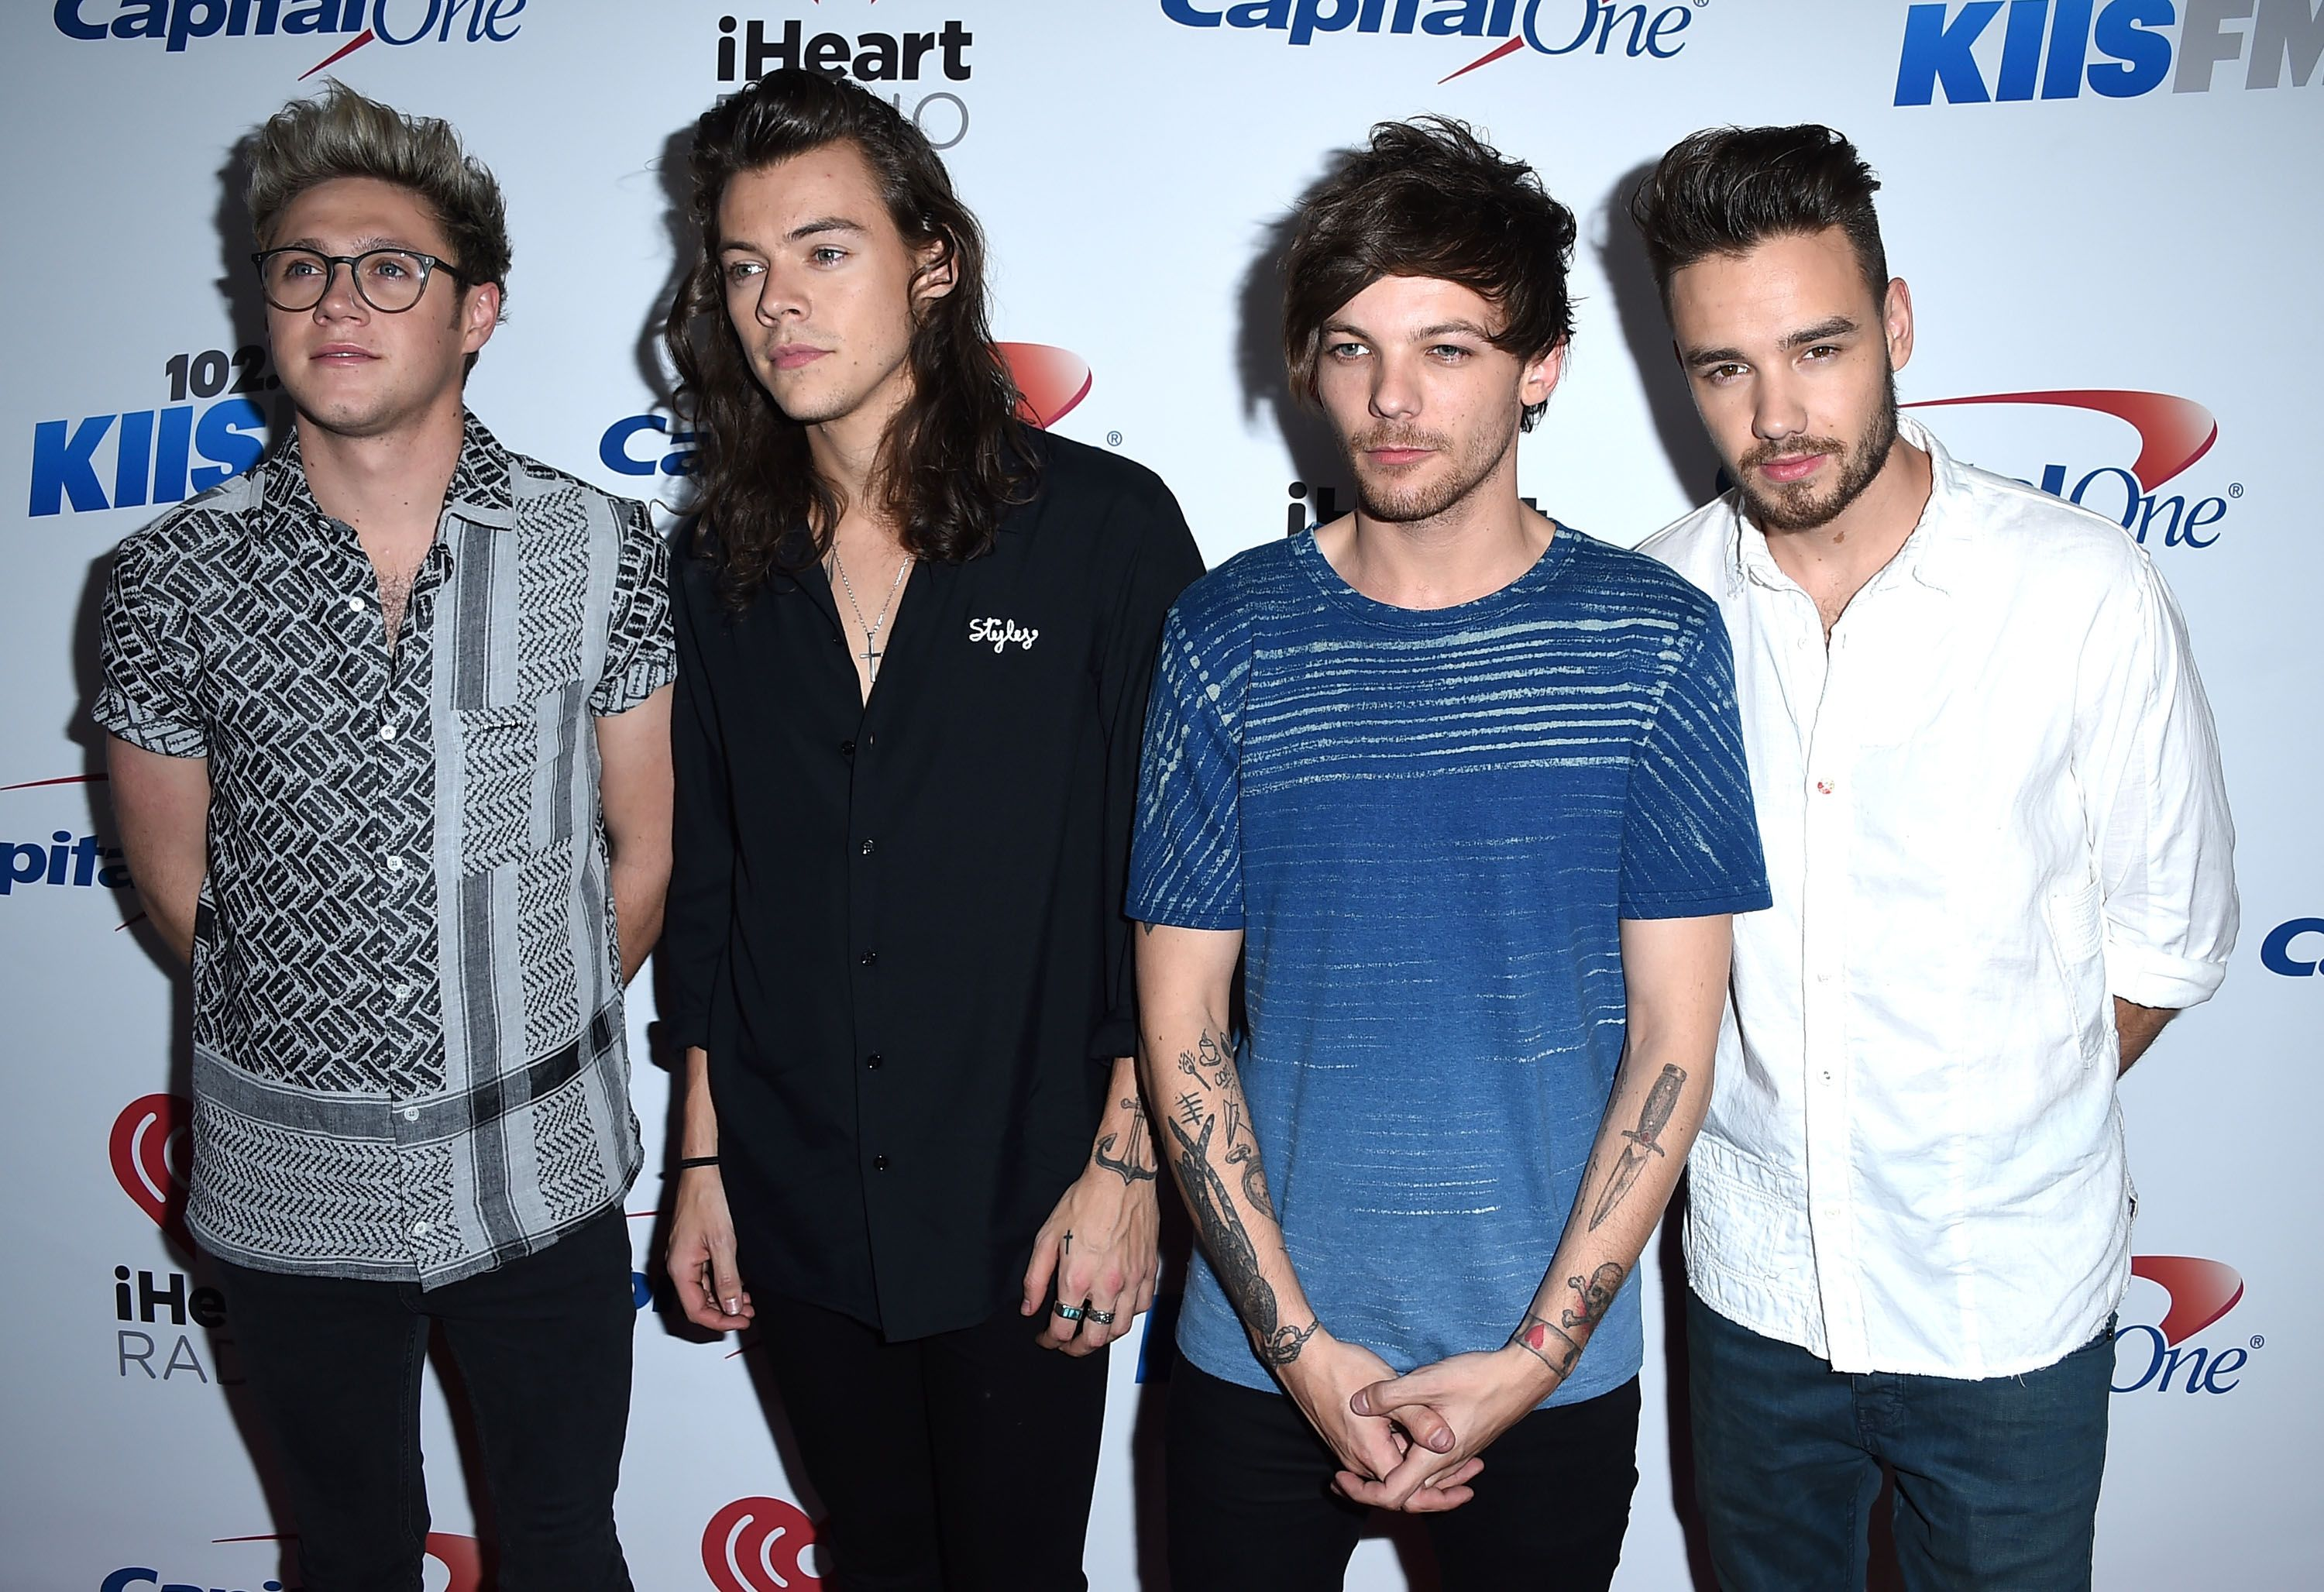 Who are each of the one direction members dating